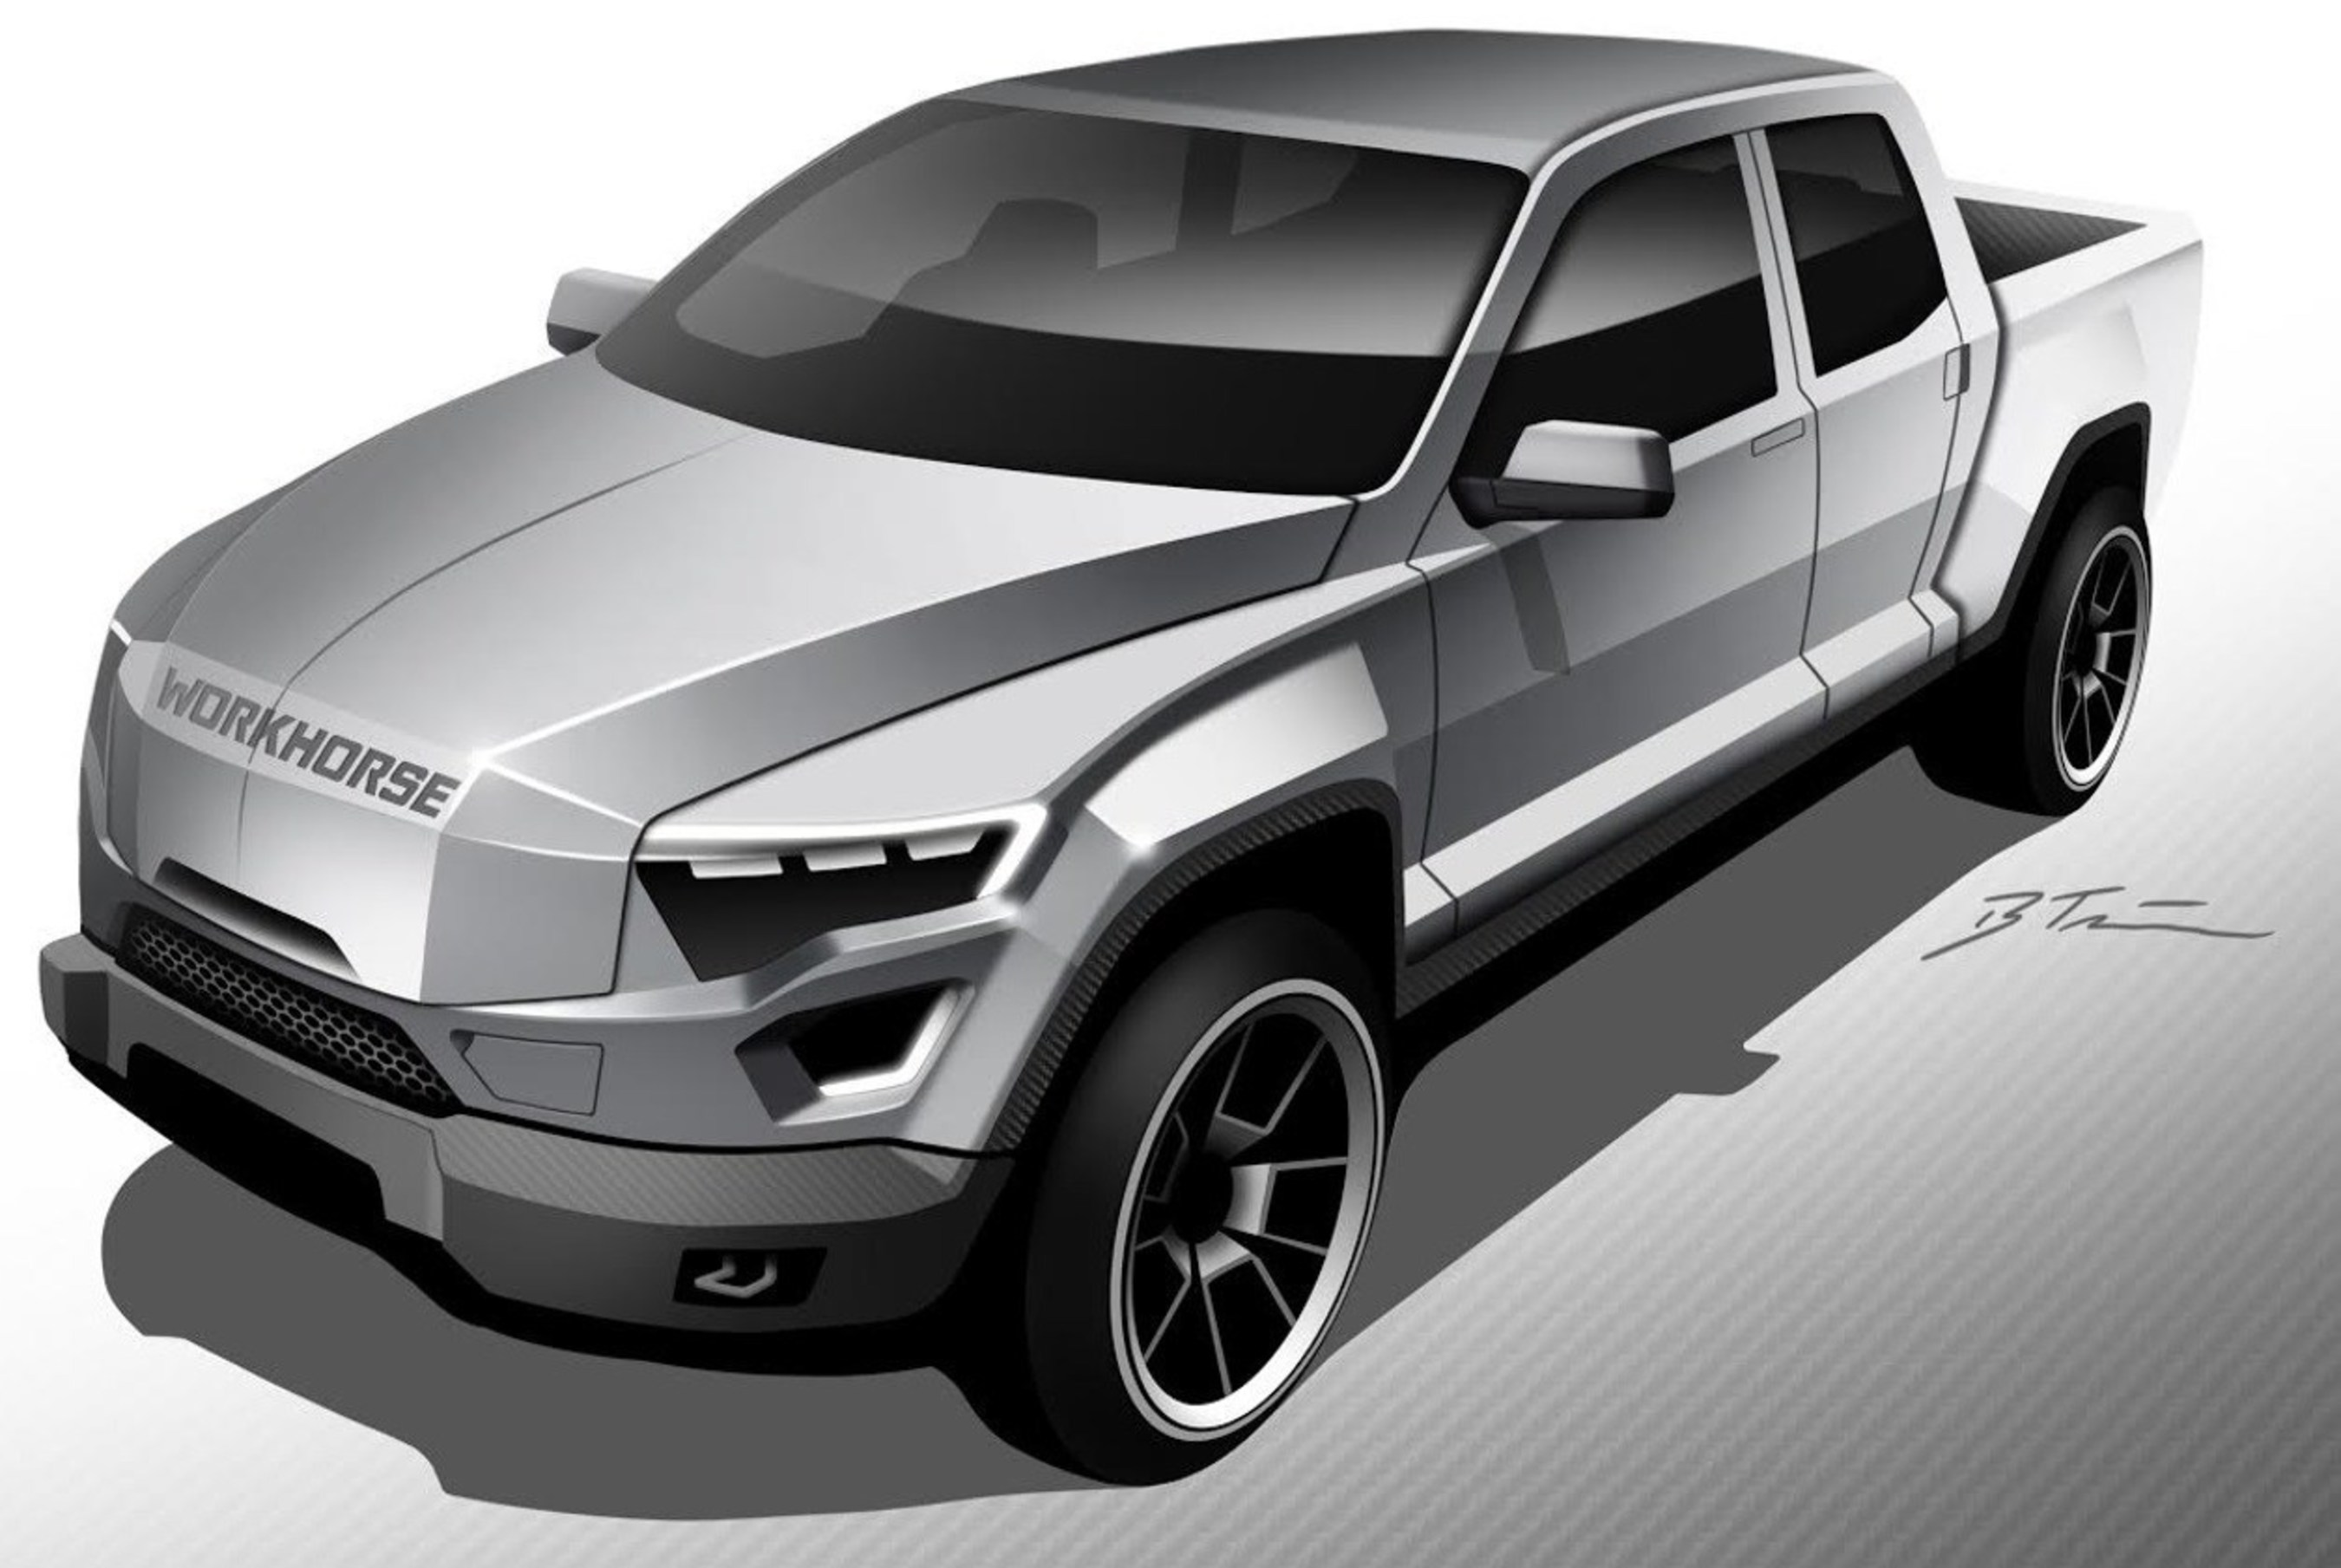 Workhorse W 15 Electric Pickup Truck With Extended Range